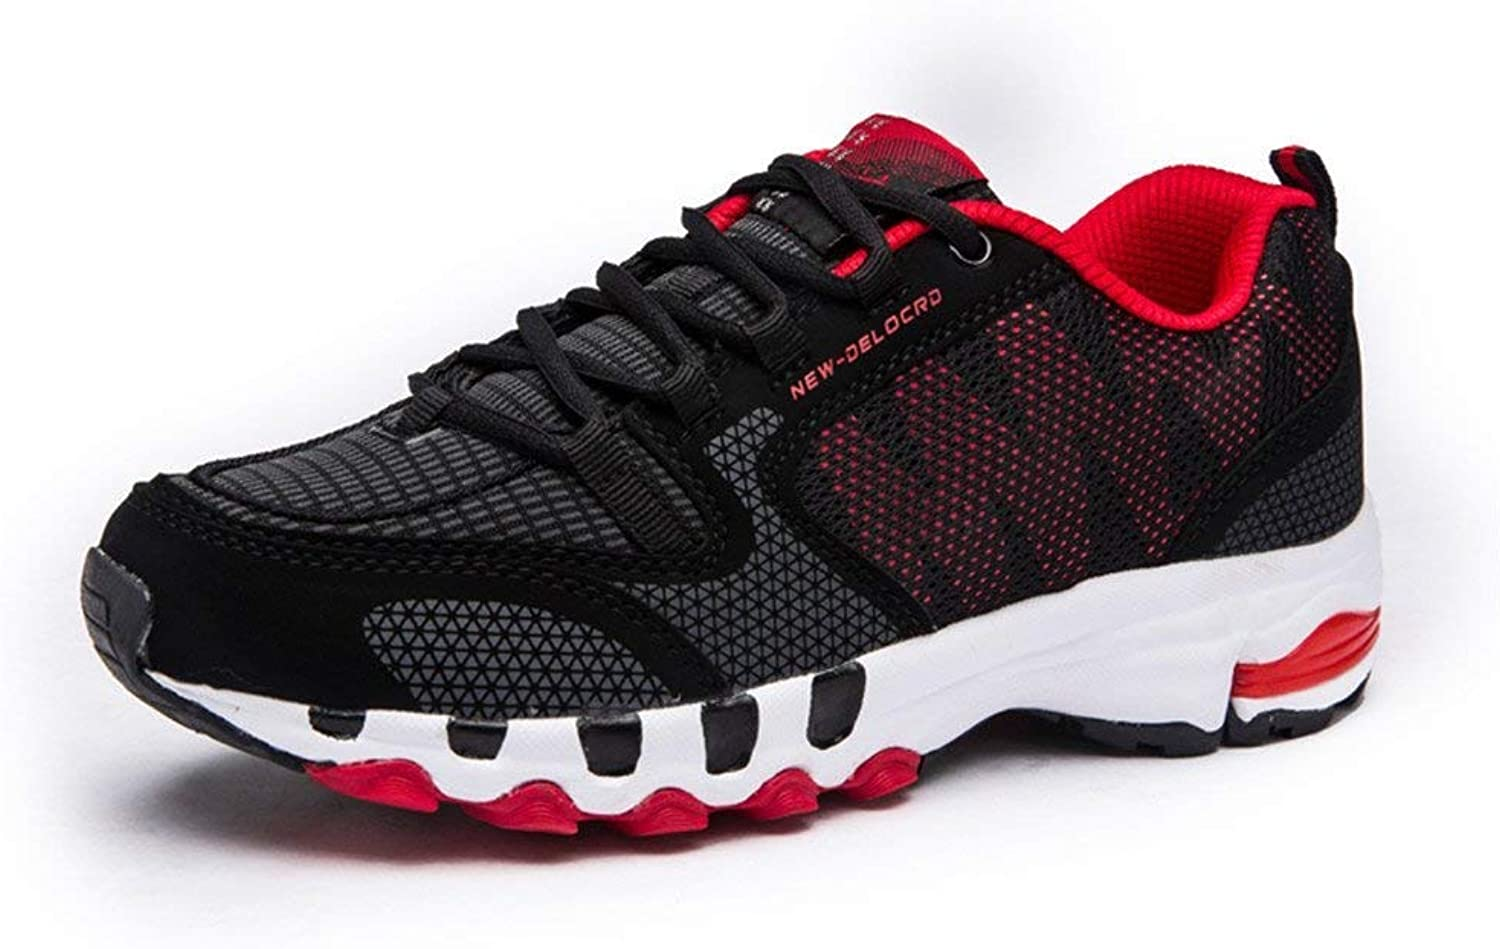 Exclusive shoesbox Men's Running shoes Women's Sneakers Breathable Mesh Casual Sports Walking shoes Outdoor Size 3548